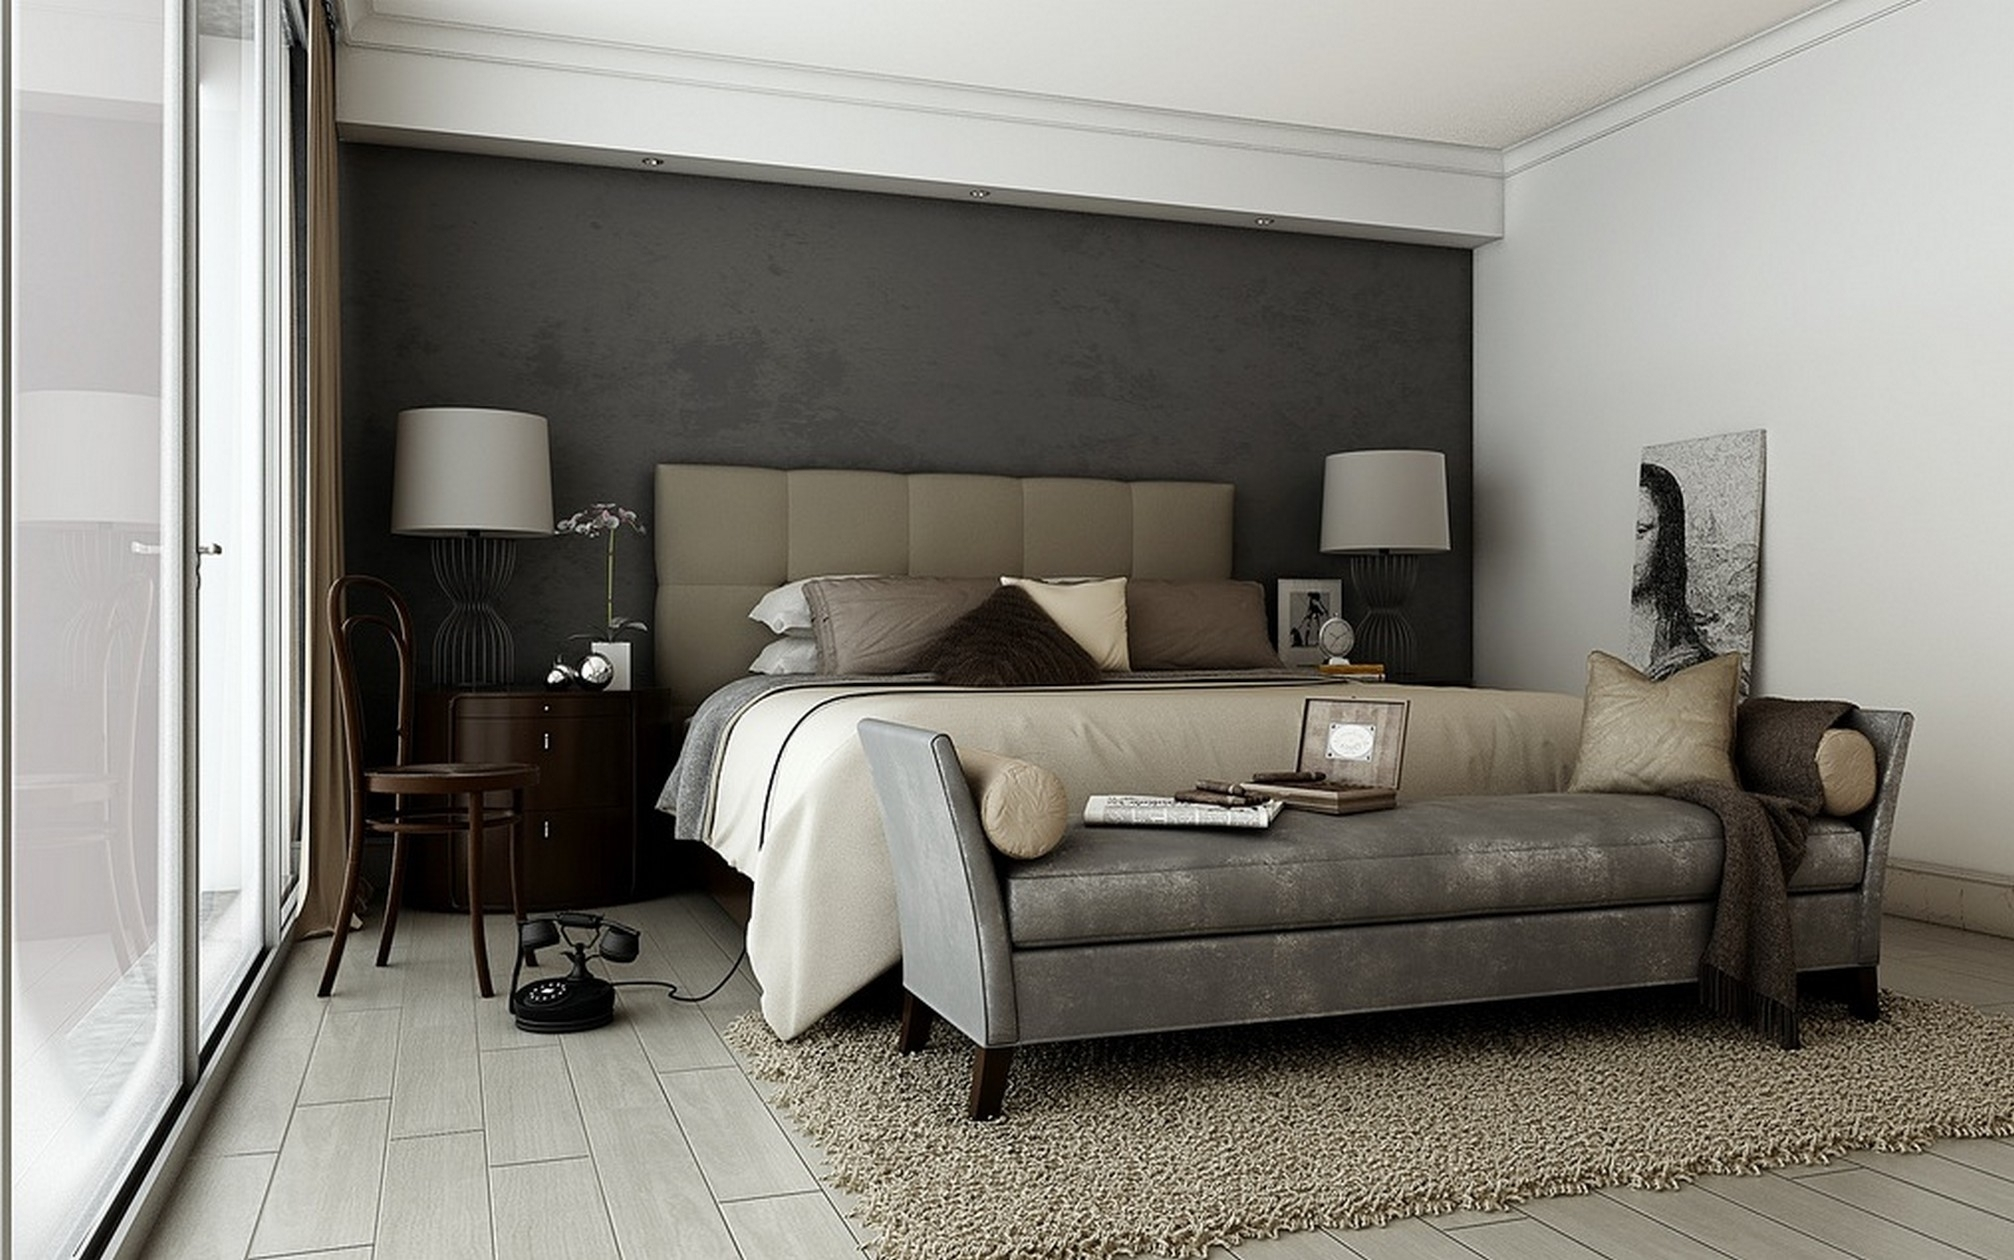 Bedroom : How To Pick The Best Bedroom Accent Wall Colors Cool With Regard To Latest Wall Accents Colors For Bedrooms (View 13 of 15)